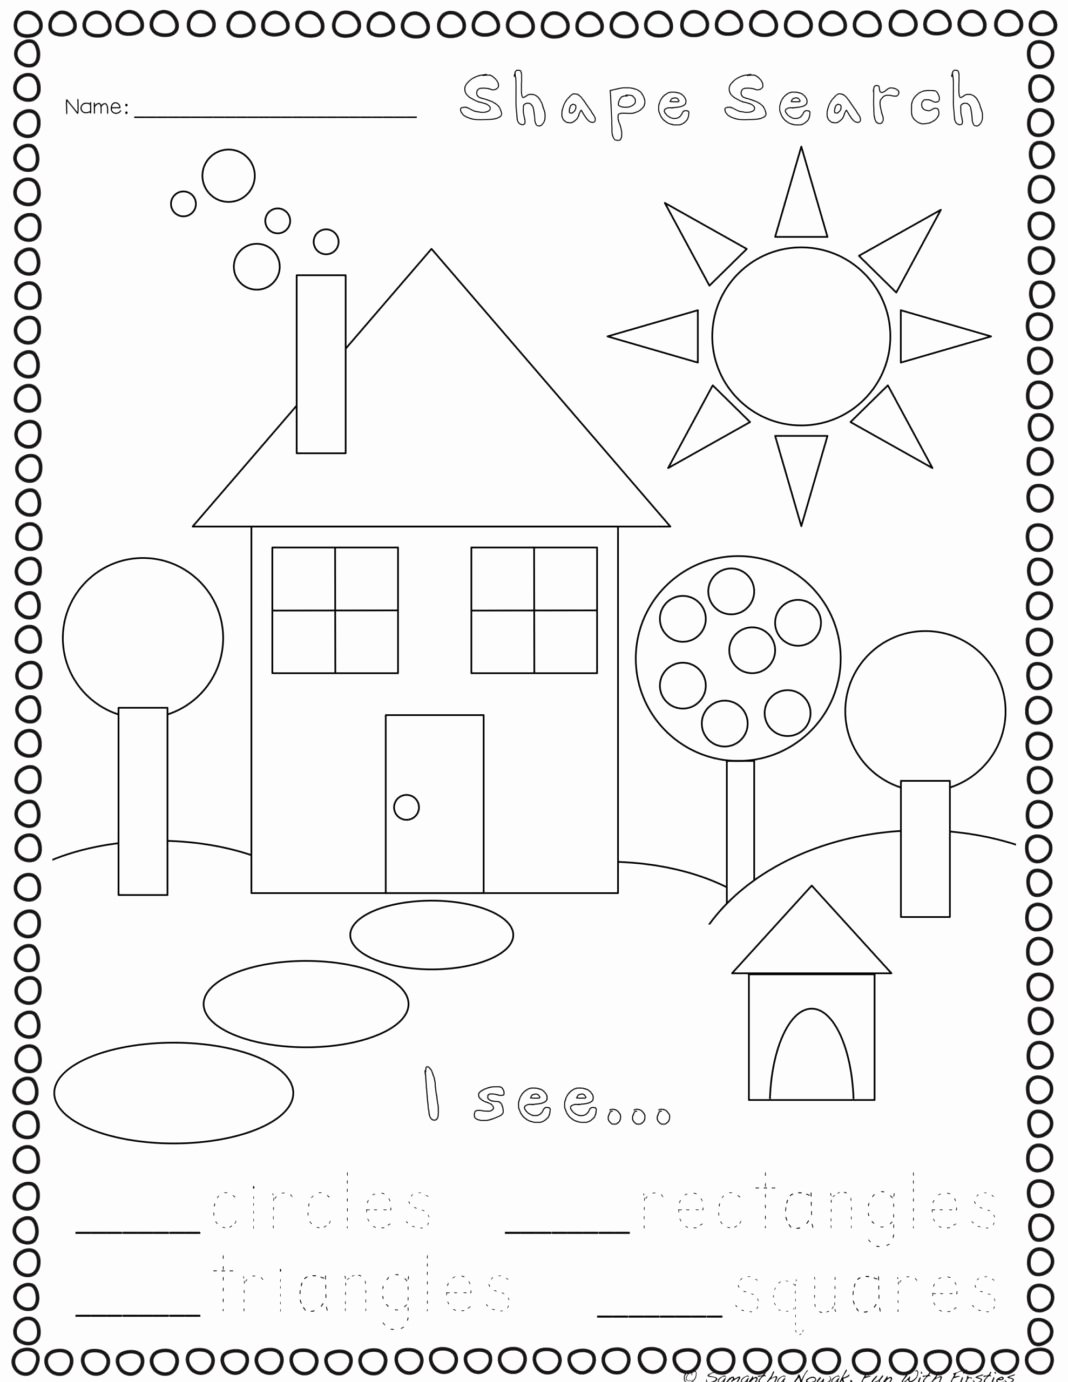 Handwriting Name Worksheets for Preschoolers Best Of Worksheets Print Go Geometry Practice Worksheets Shapes